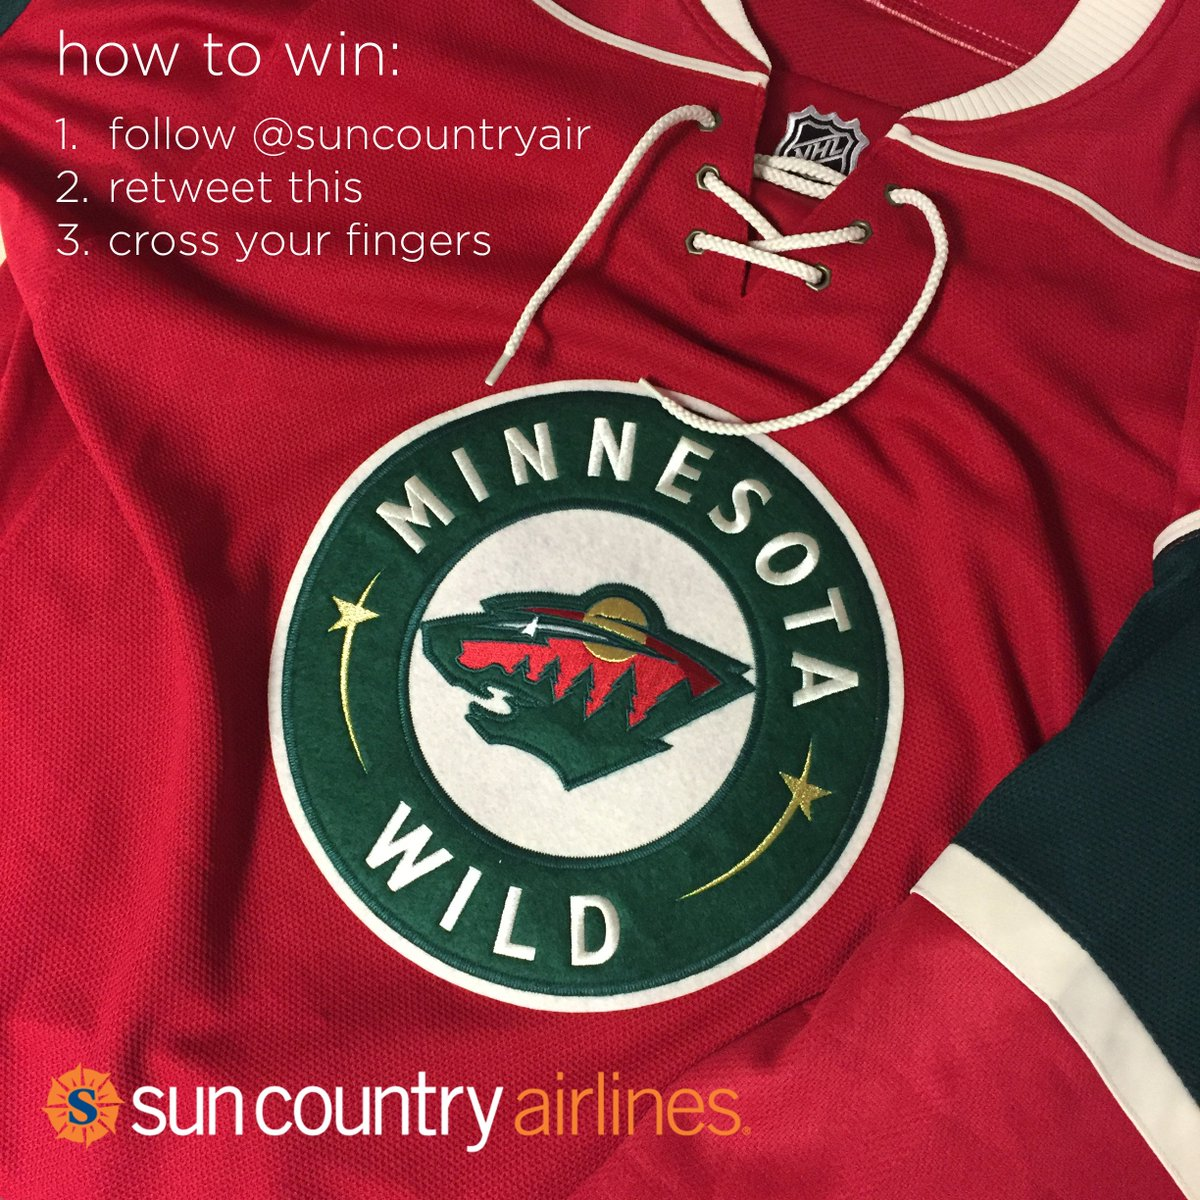 It's game day, & we want to help you show your MN Wild pride! RT to win a signed jersey.  https://t.co/OwEI28IgKG https://t.co/bVBAmxBDbC